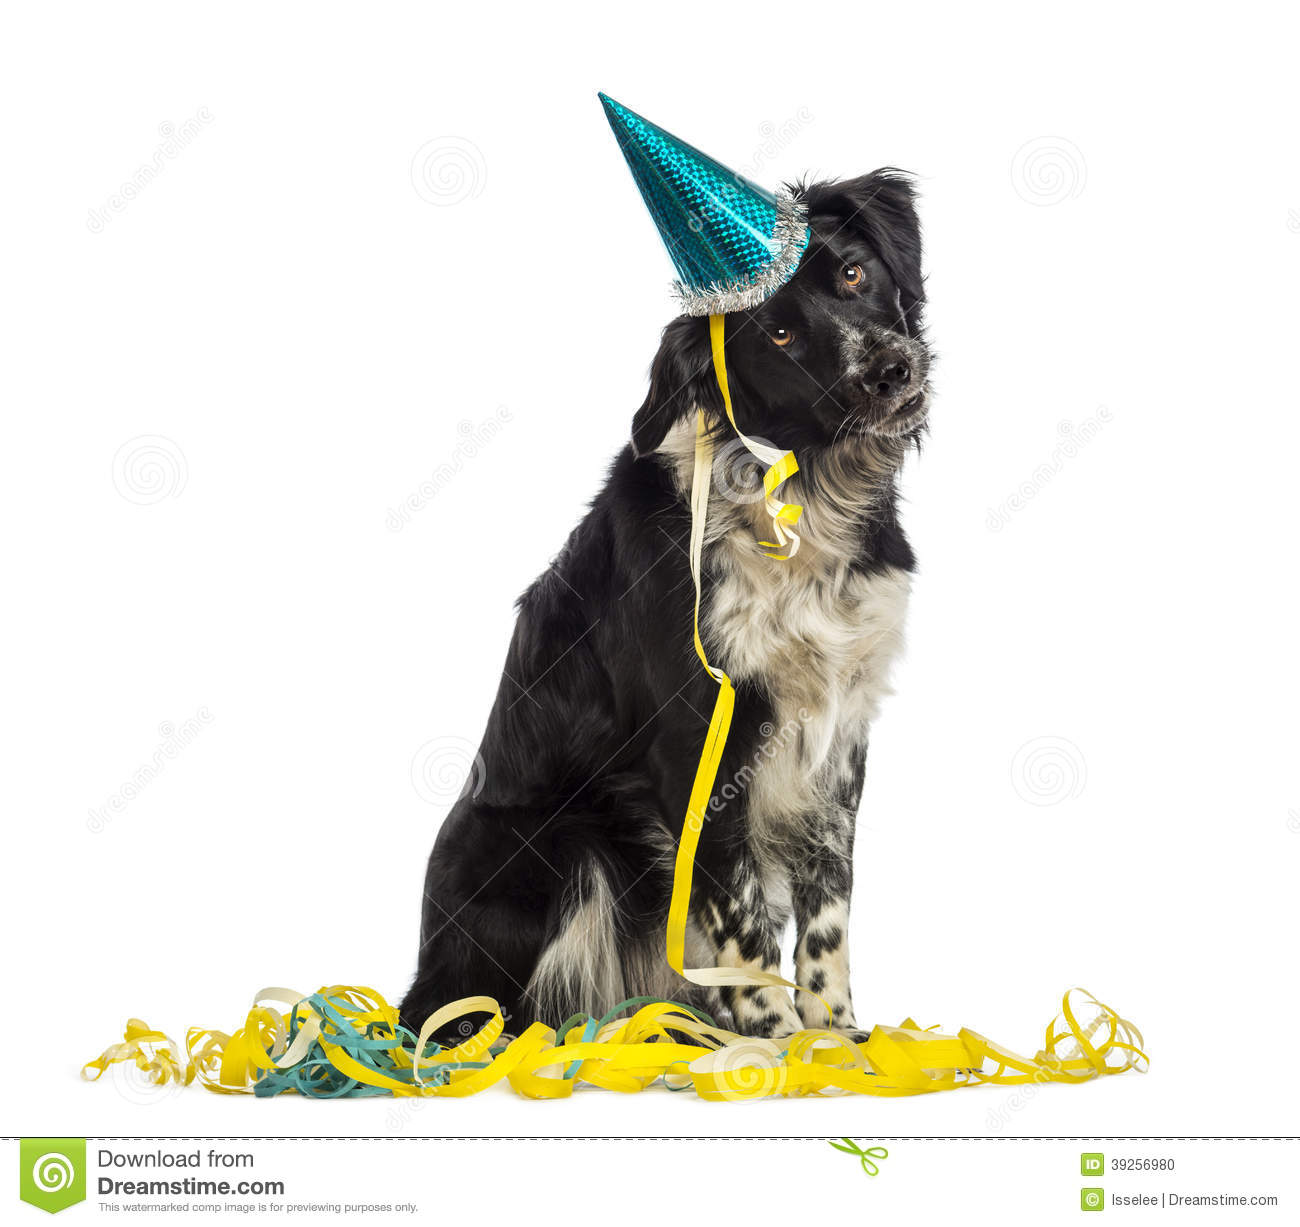 border collie birthday ; border-collie-wearing-party-hat-sitting-serpentines-isolated-white-39256980